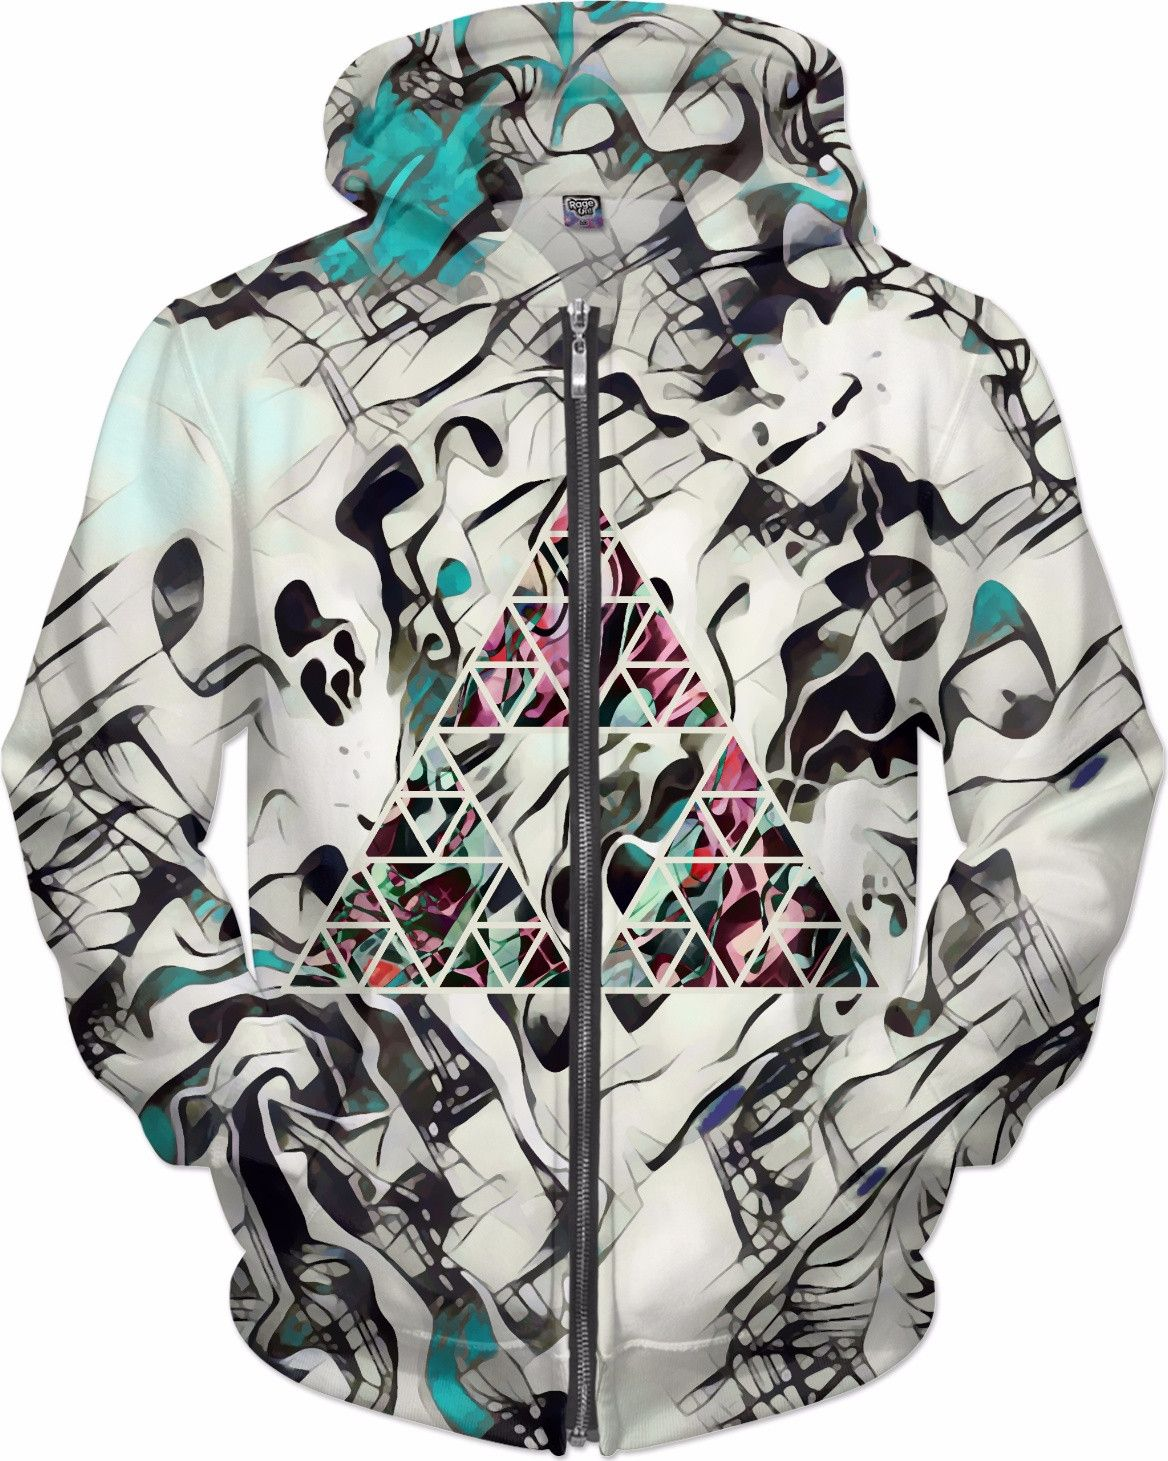 Check out my new product https://www.rageon.com/products/abstract-art-hipster-triangles-pyramid-turquoise-2 on RageOn!